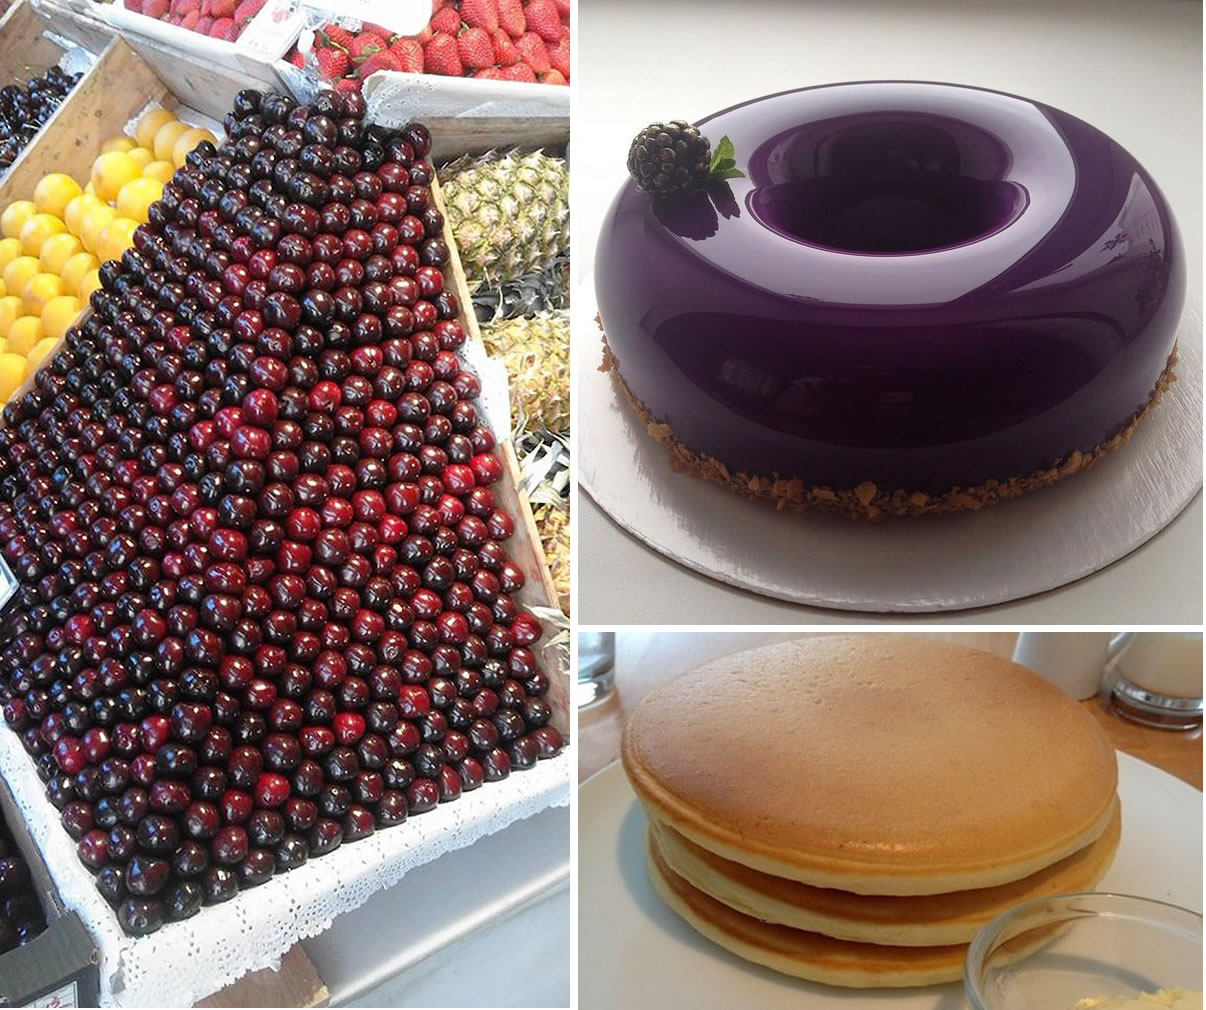 See This 14 Totally Perfect Food Photos And You Are Ready To Die :D